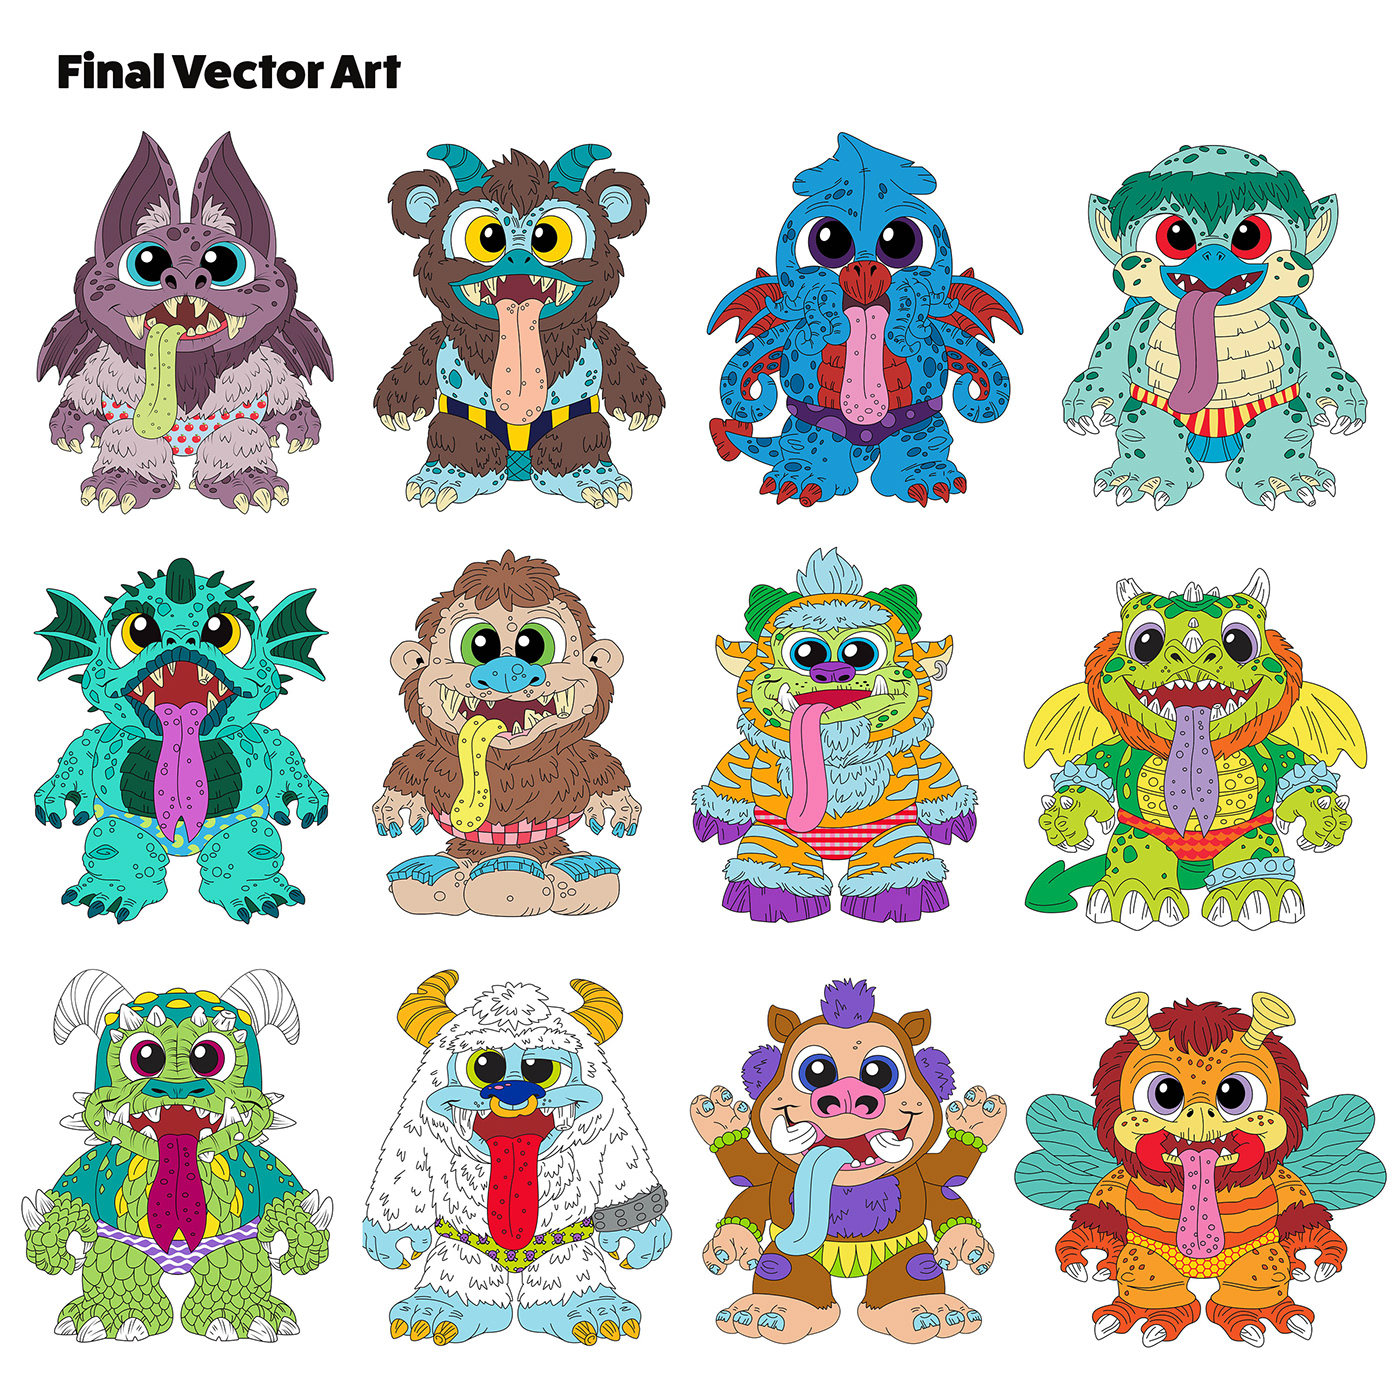 New Toys Toy Crate Creatures Surprise Flingers Series 2